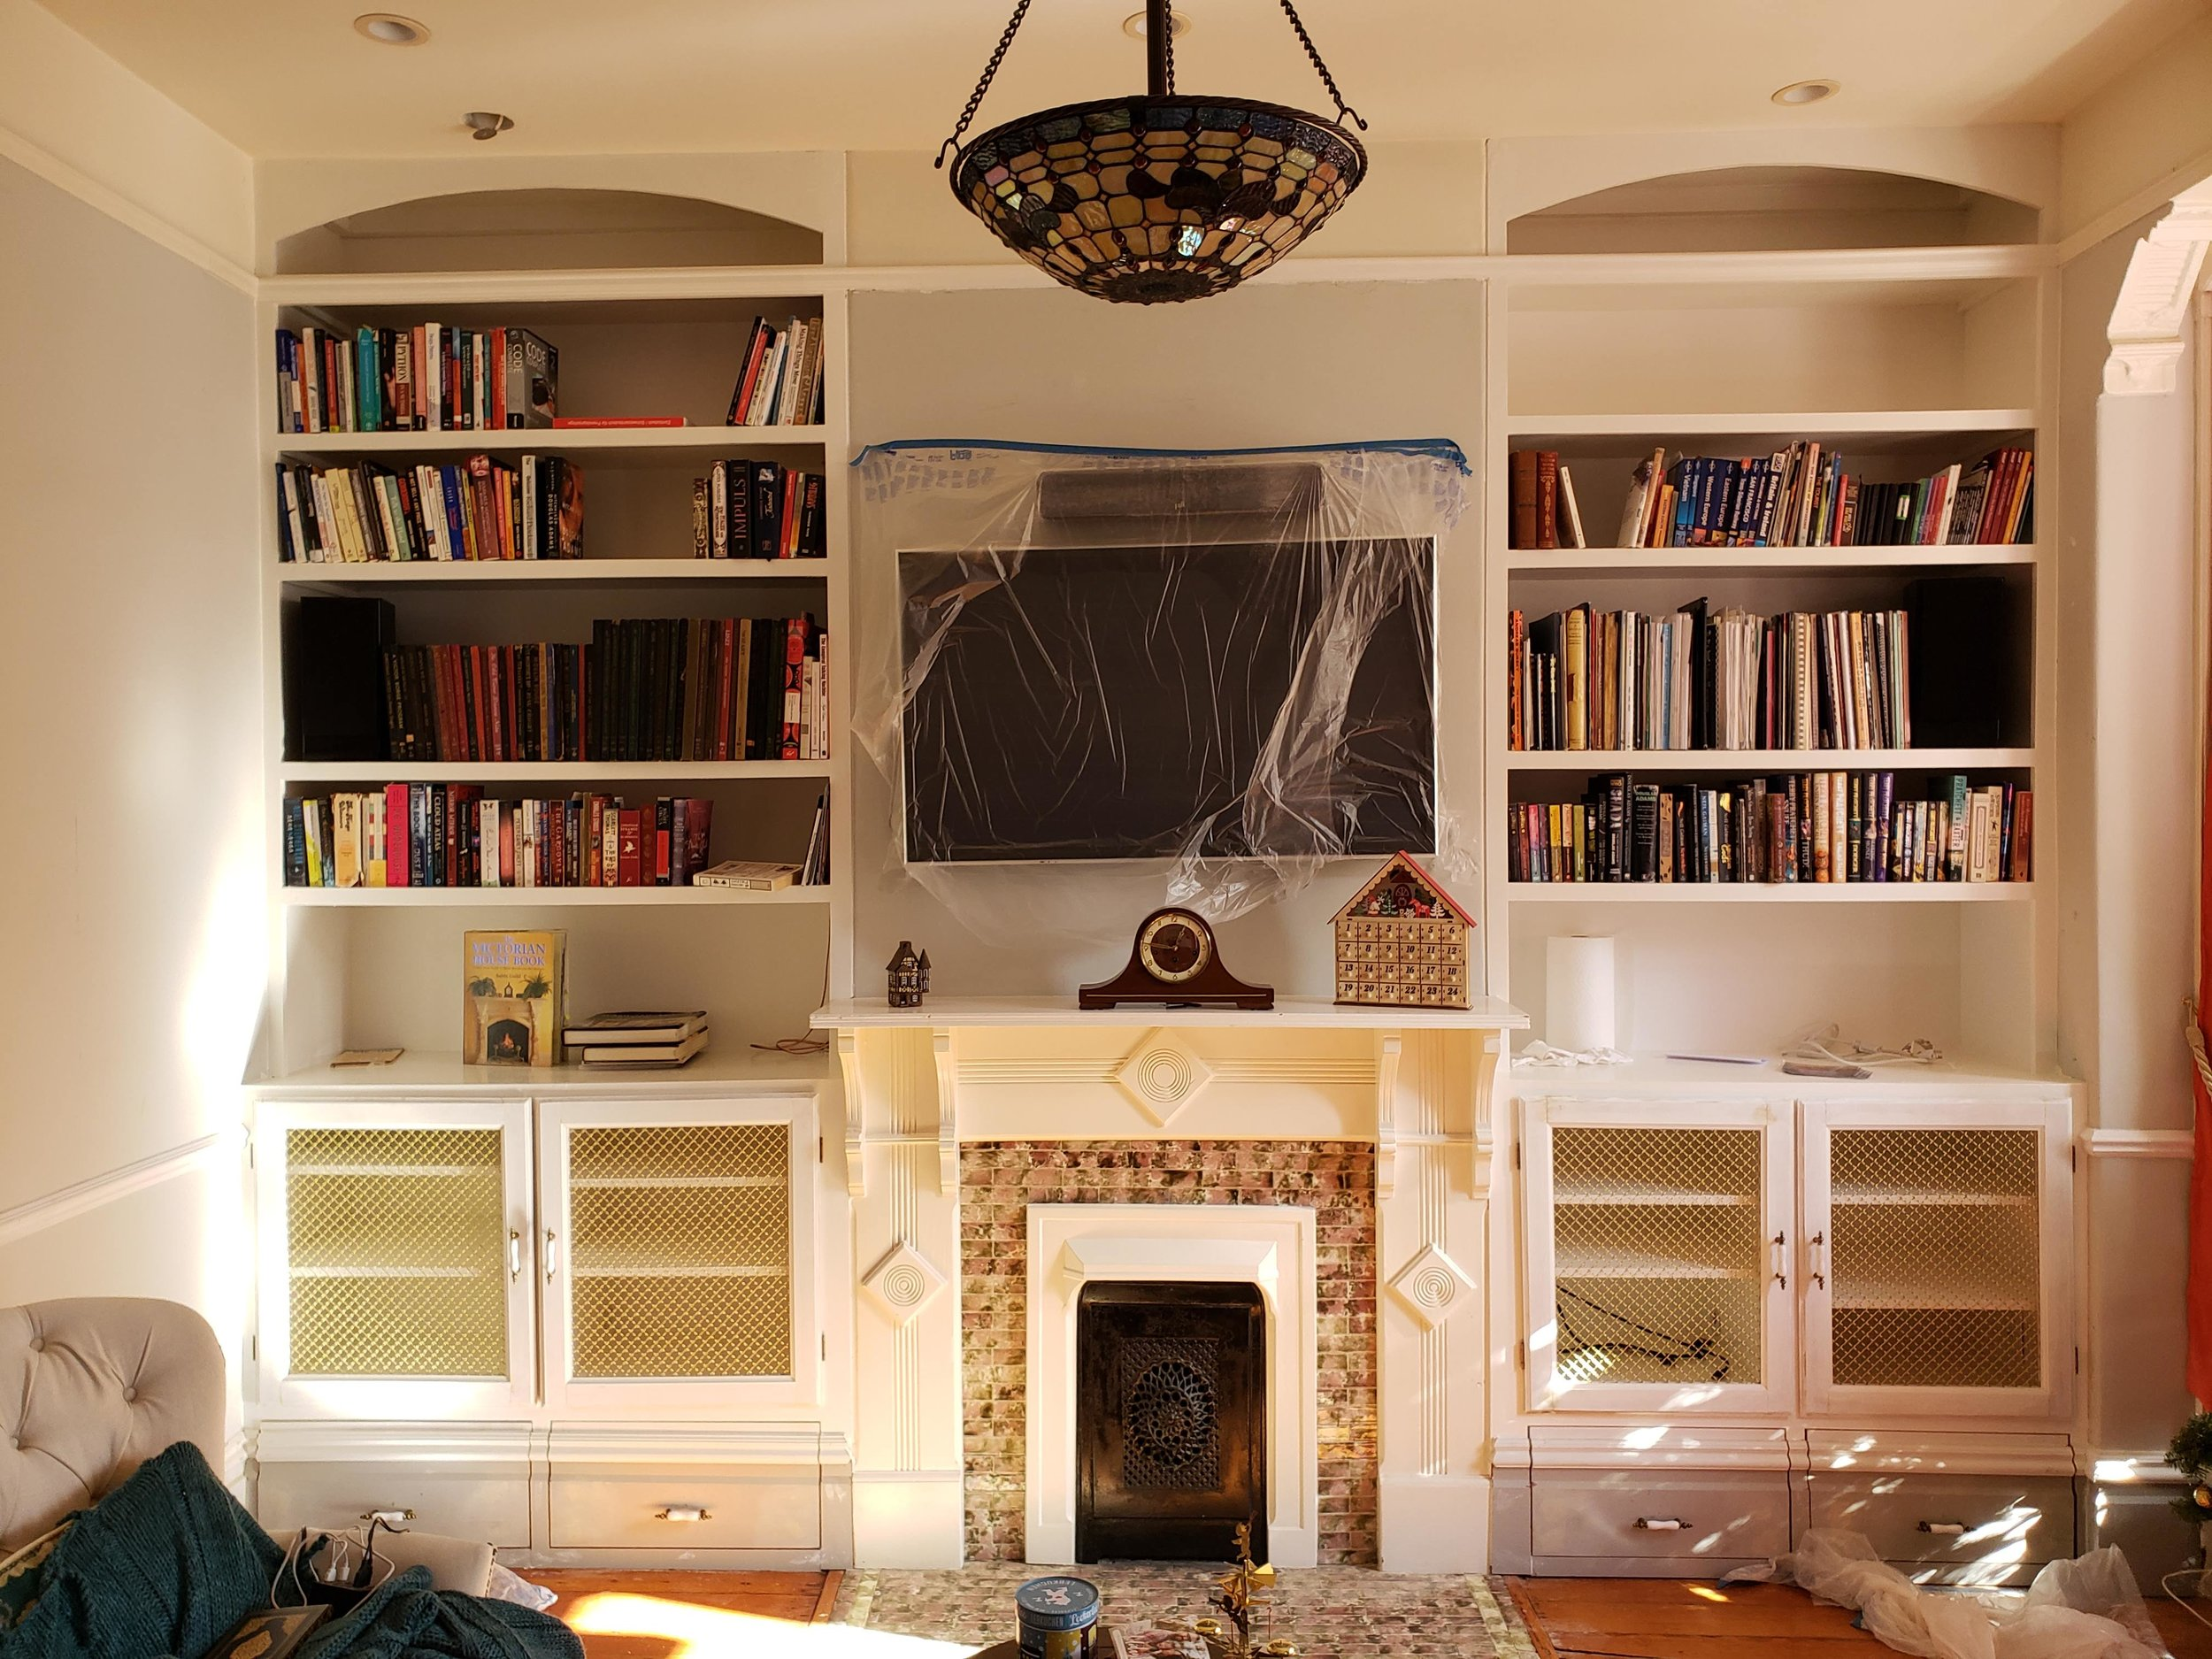 Victorian Built-in Bookshelves